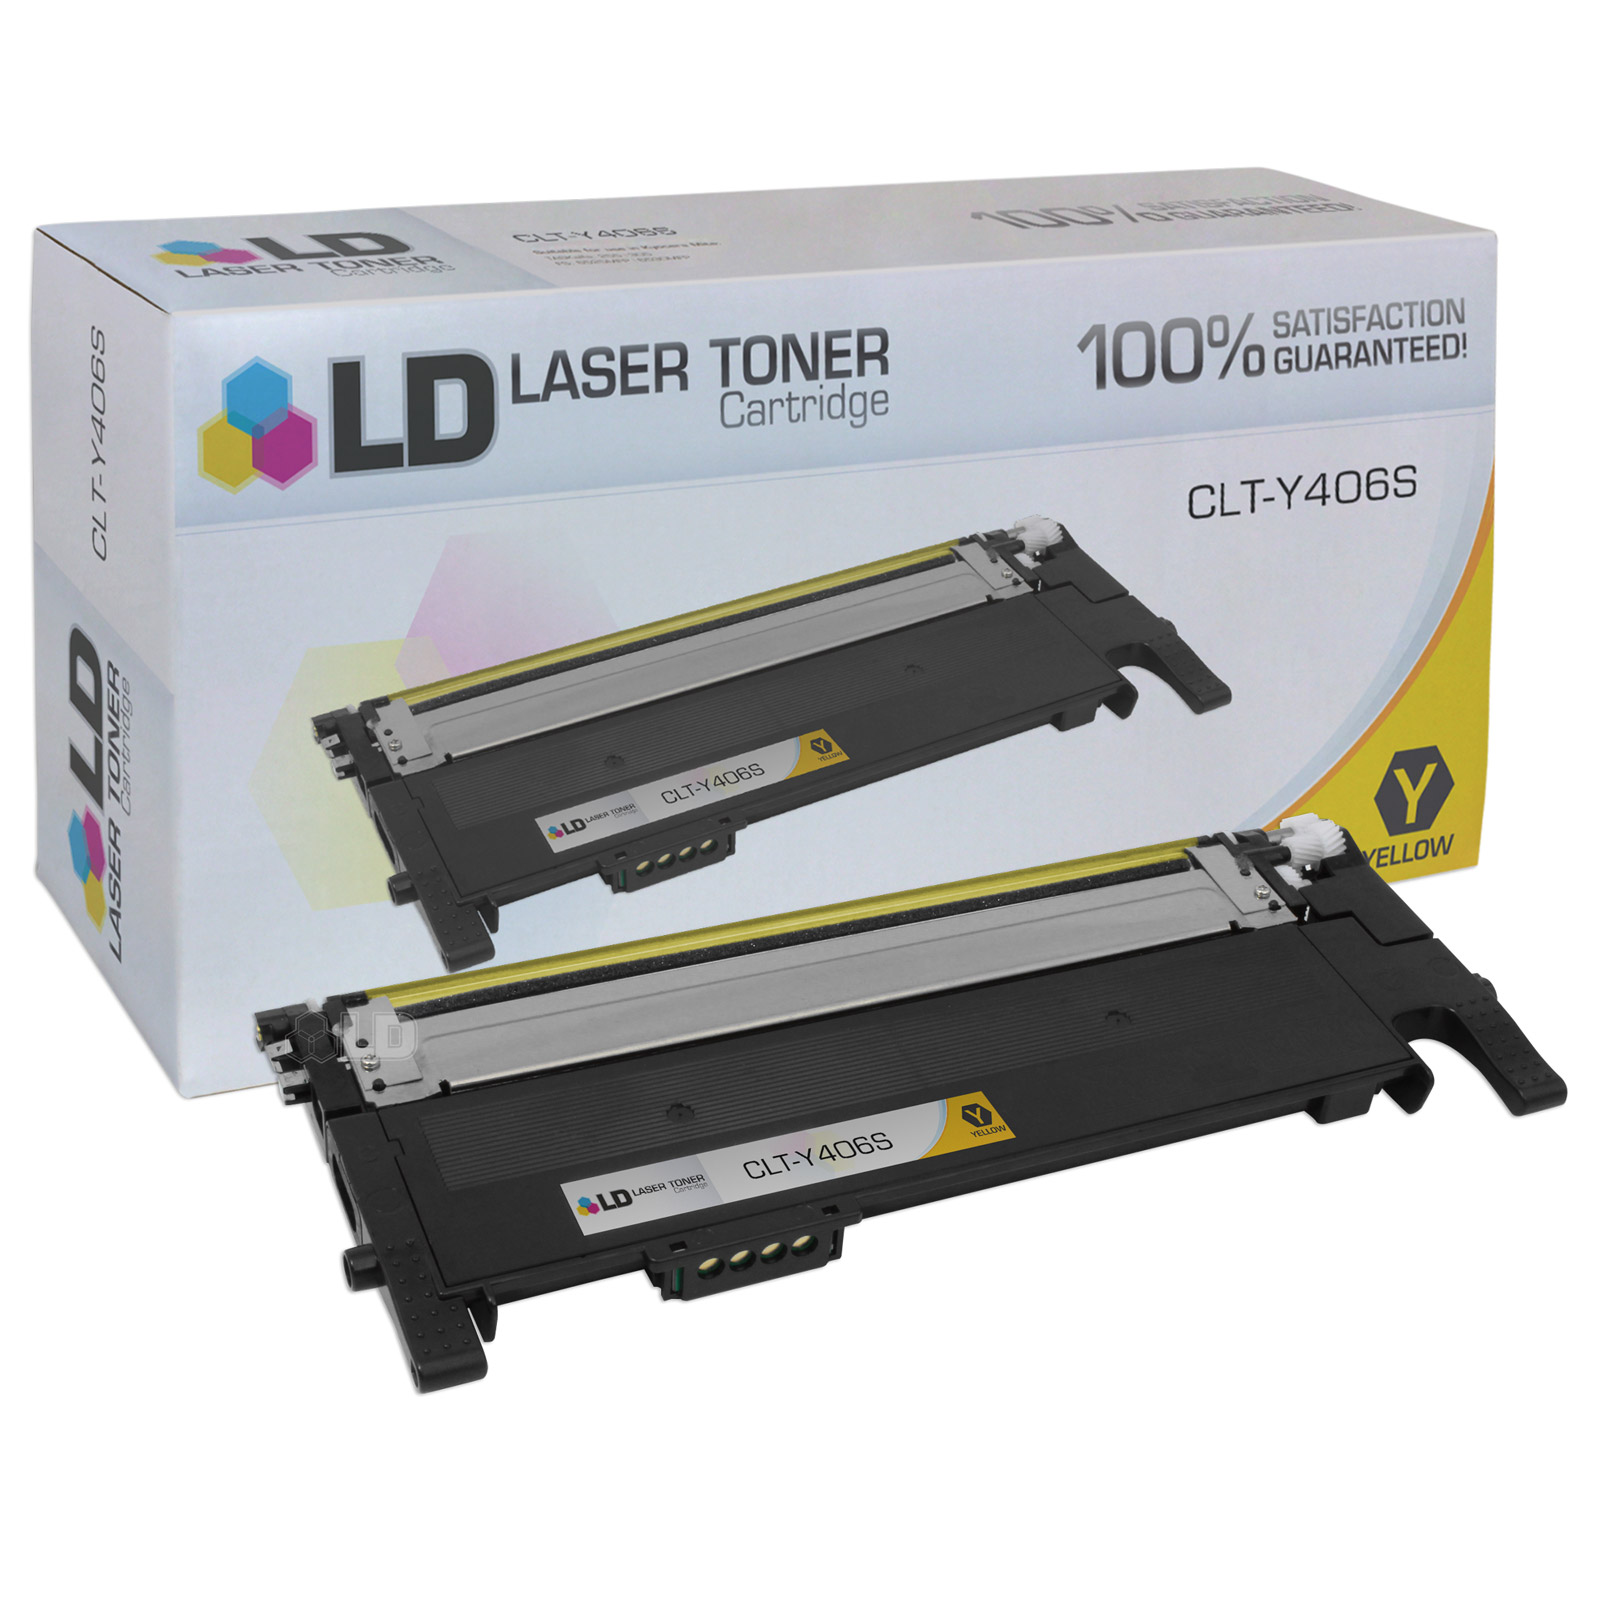 LD Compatible Alternative to Samsung CLT-Y406S Yellow Laser Toner Cartridge for use in the: CLP-365W, CLP-3305FW, Xpress